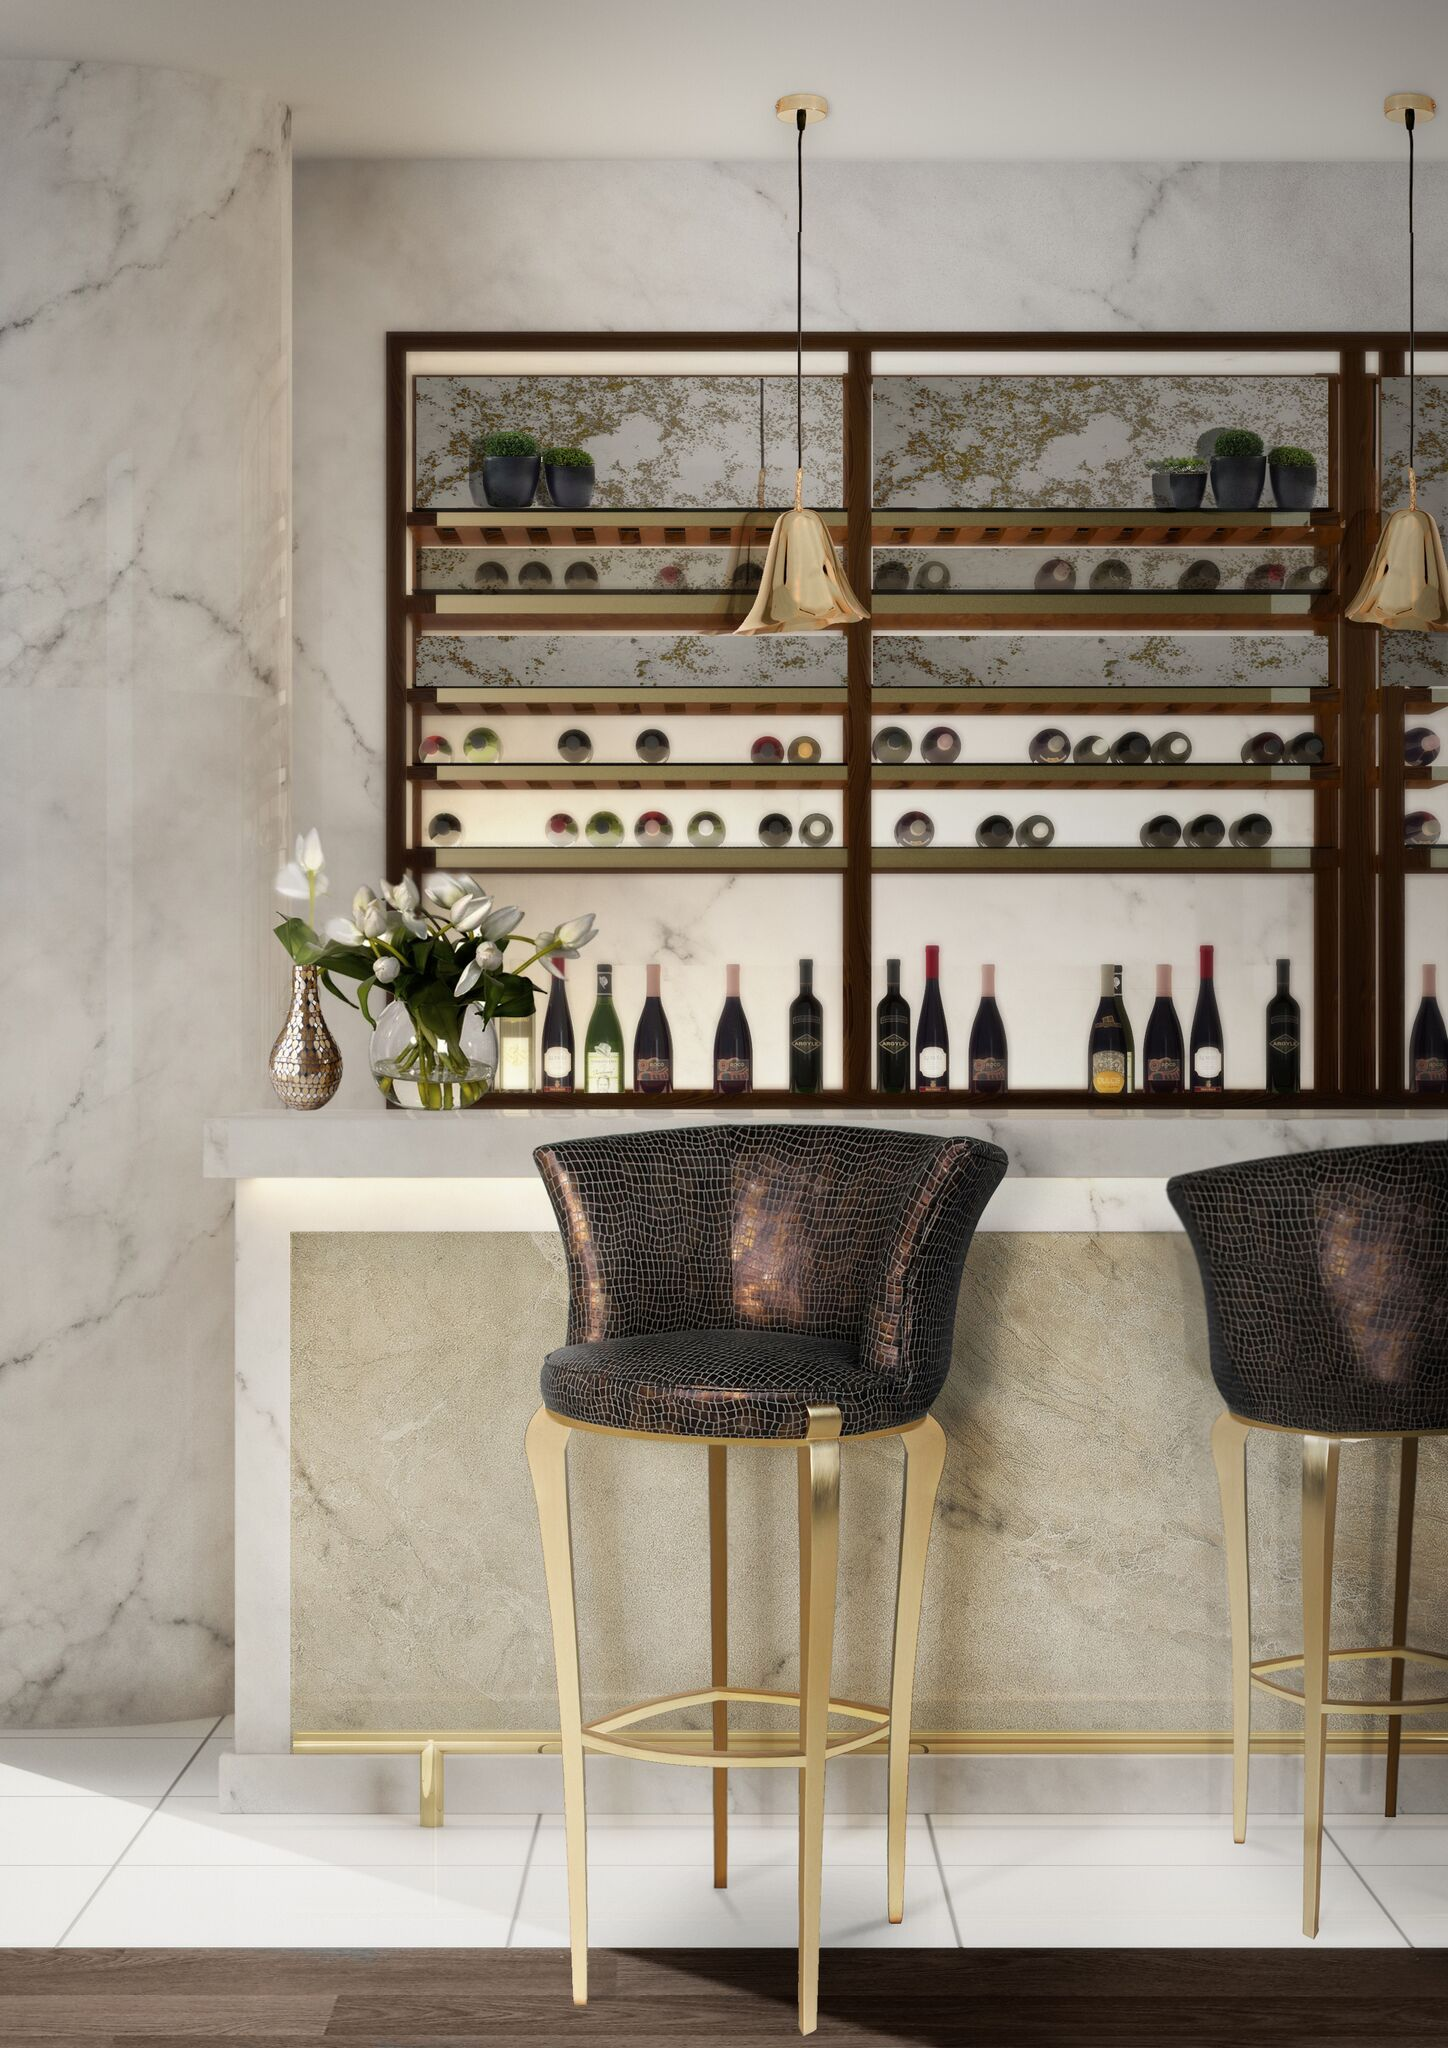 Bar Design | Interior Design Inspiration with DELICIOSA Bar Stool by @koket Restaurant Interior #bardesign #barstools #barchair Find more at: https://www.bykoket.com/guilty-pleasures/upholstery/deliciosa-bar-stool.php